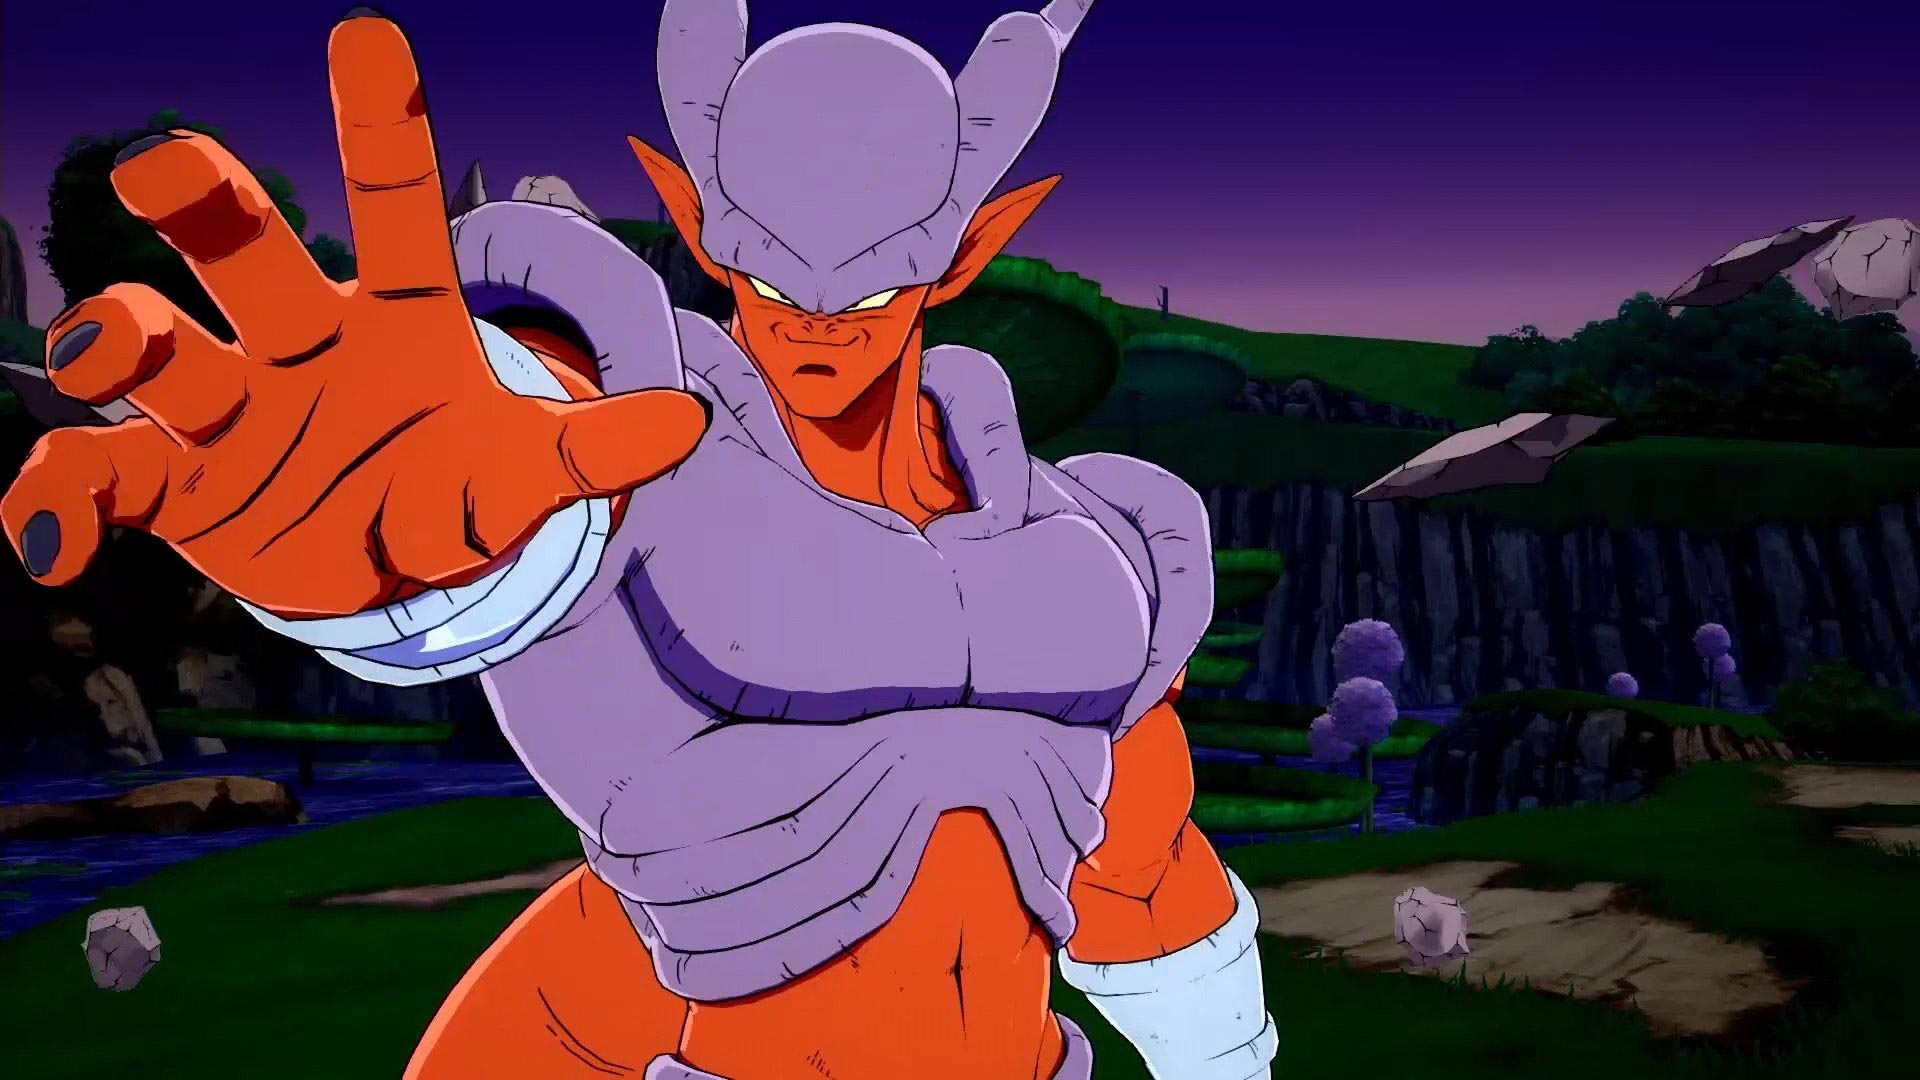 Janemba screenshots in Dragon Ball FighterZ 2 out of 4 image gallery